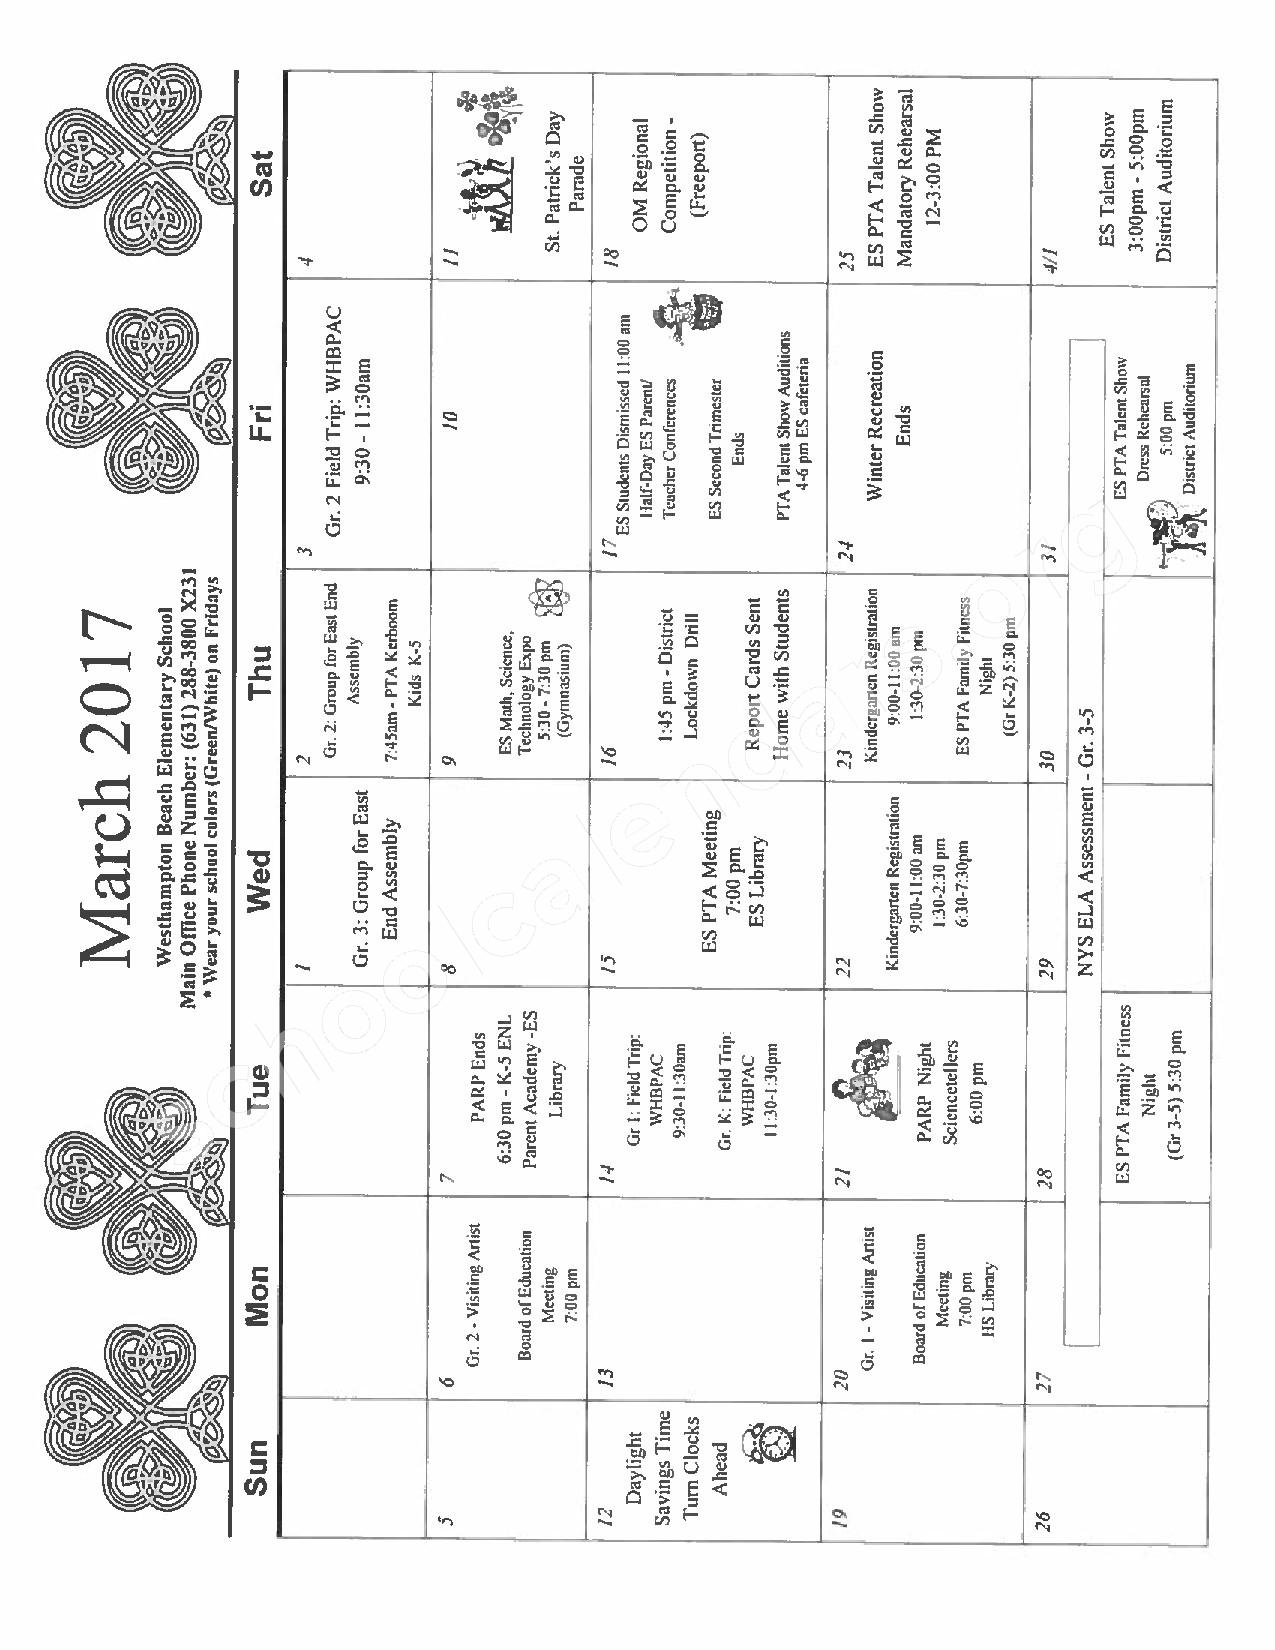 March 2017 District Calendar – Westhampton Beach Union Free School District – page 1